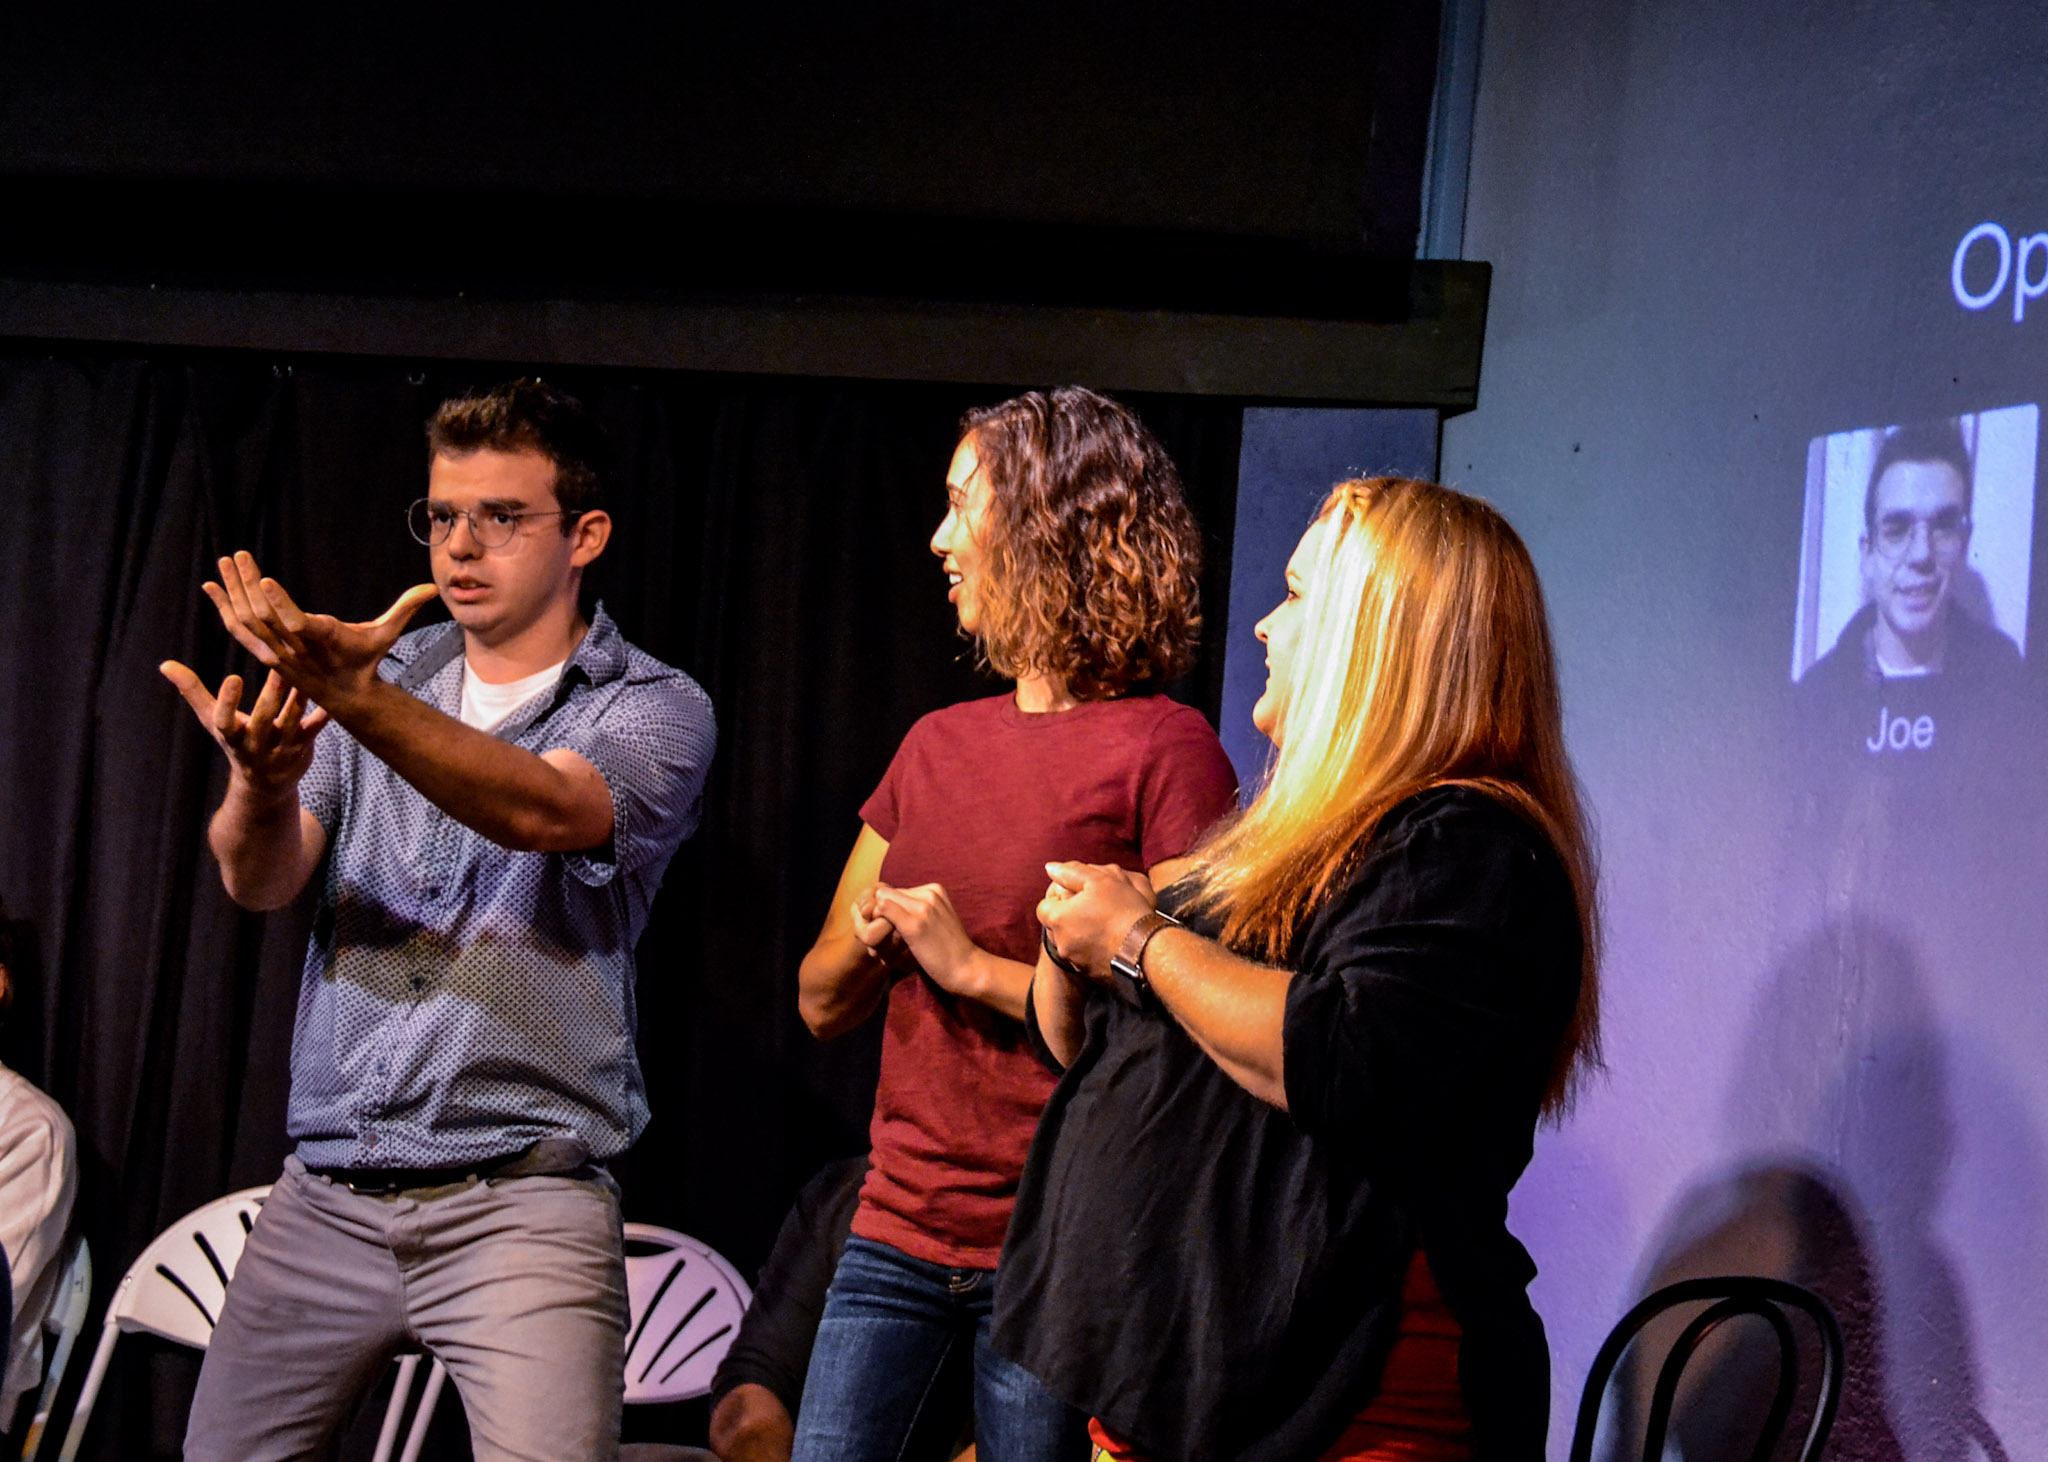 Joe playing Opera Singer with Gabbi and Angela in Whose Line St Pete.